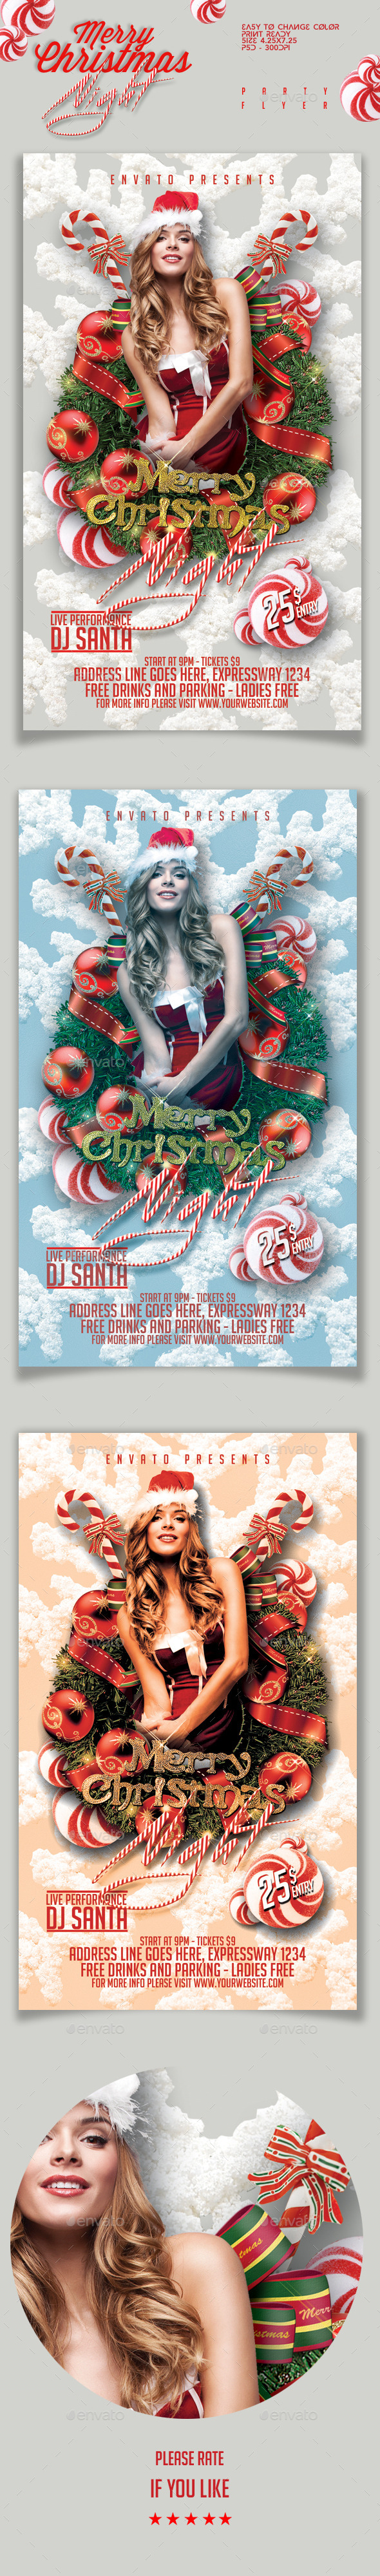 Merry Christmas Night Party Flyer